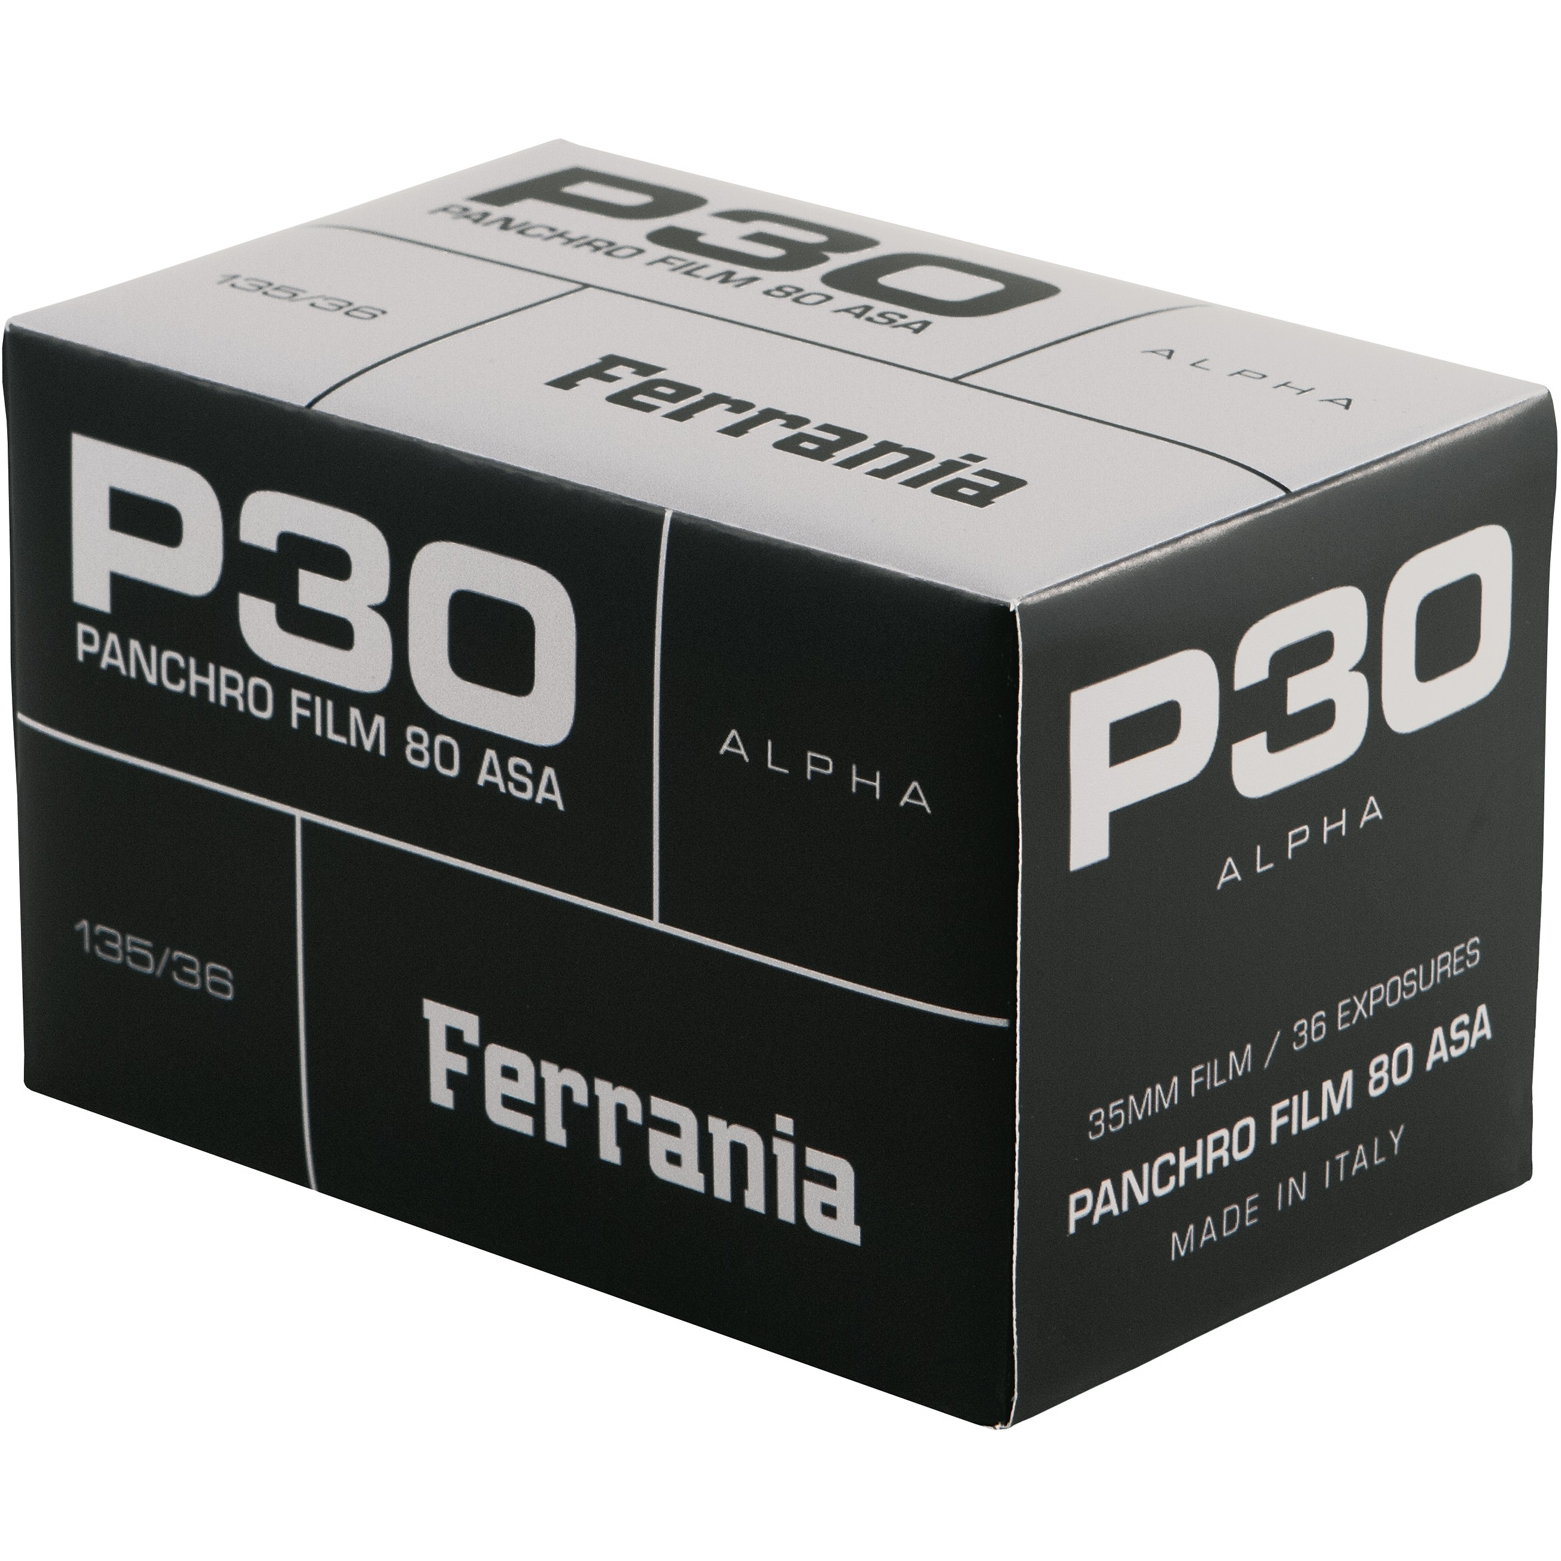 FERRANIA P30® ALPHA pack shot and logos   JPG, PNG and EPS files included